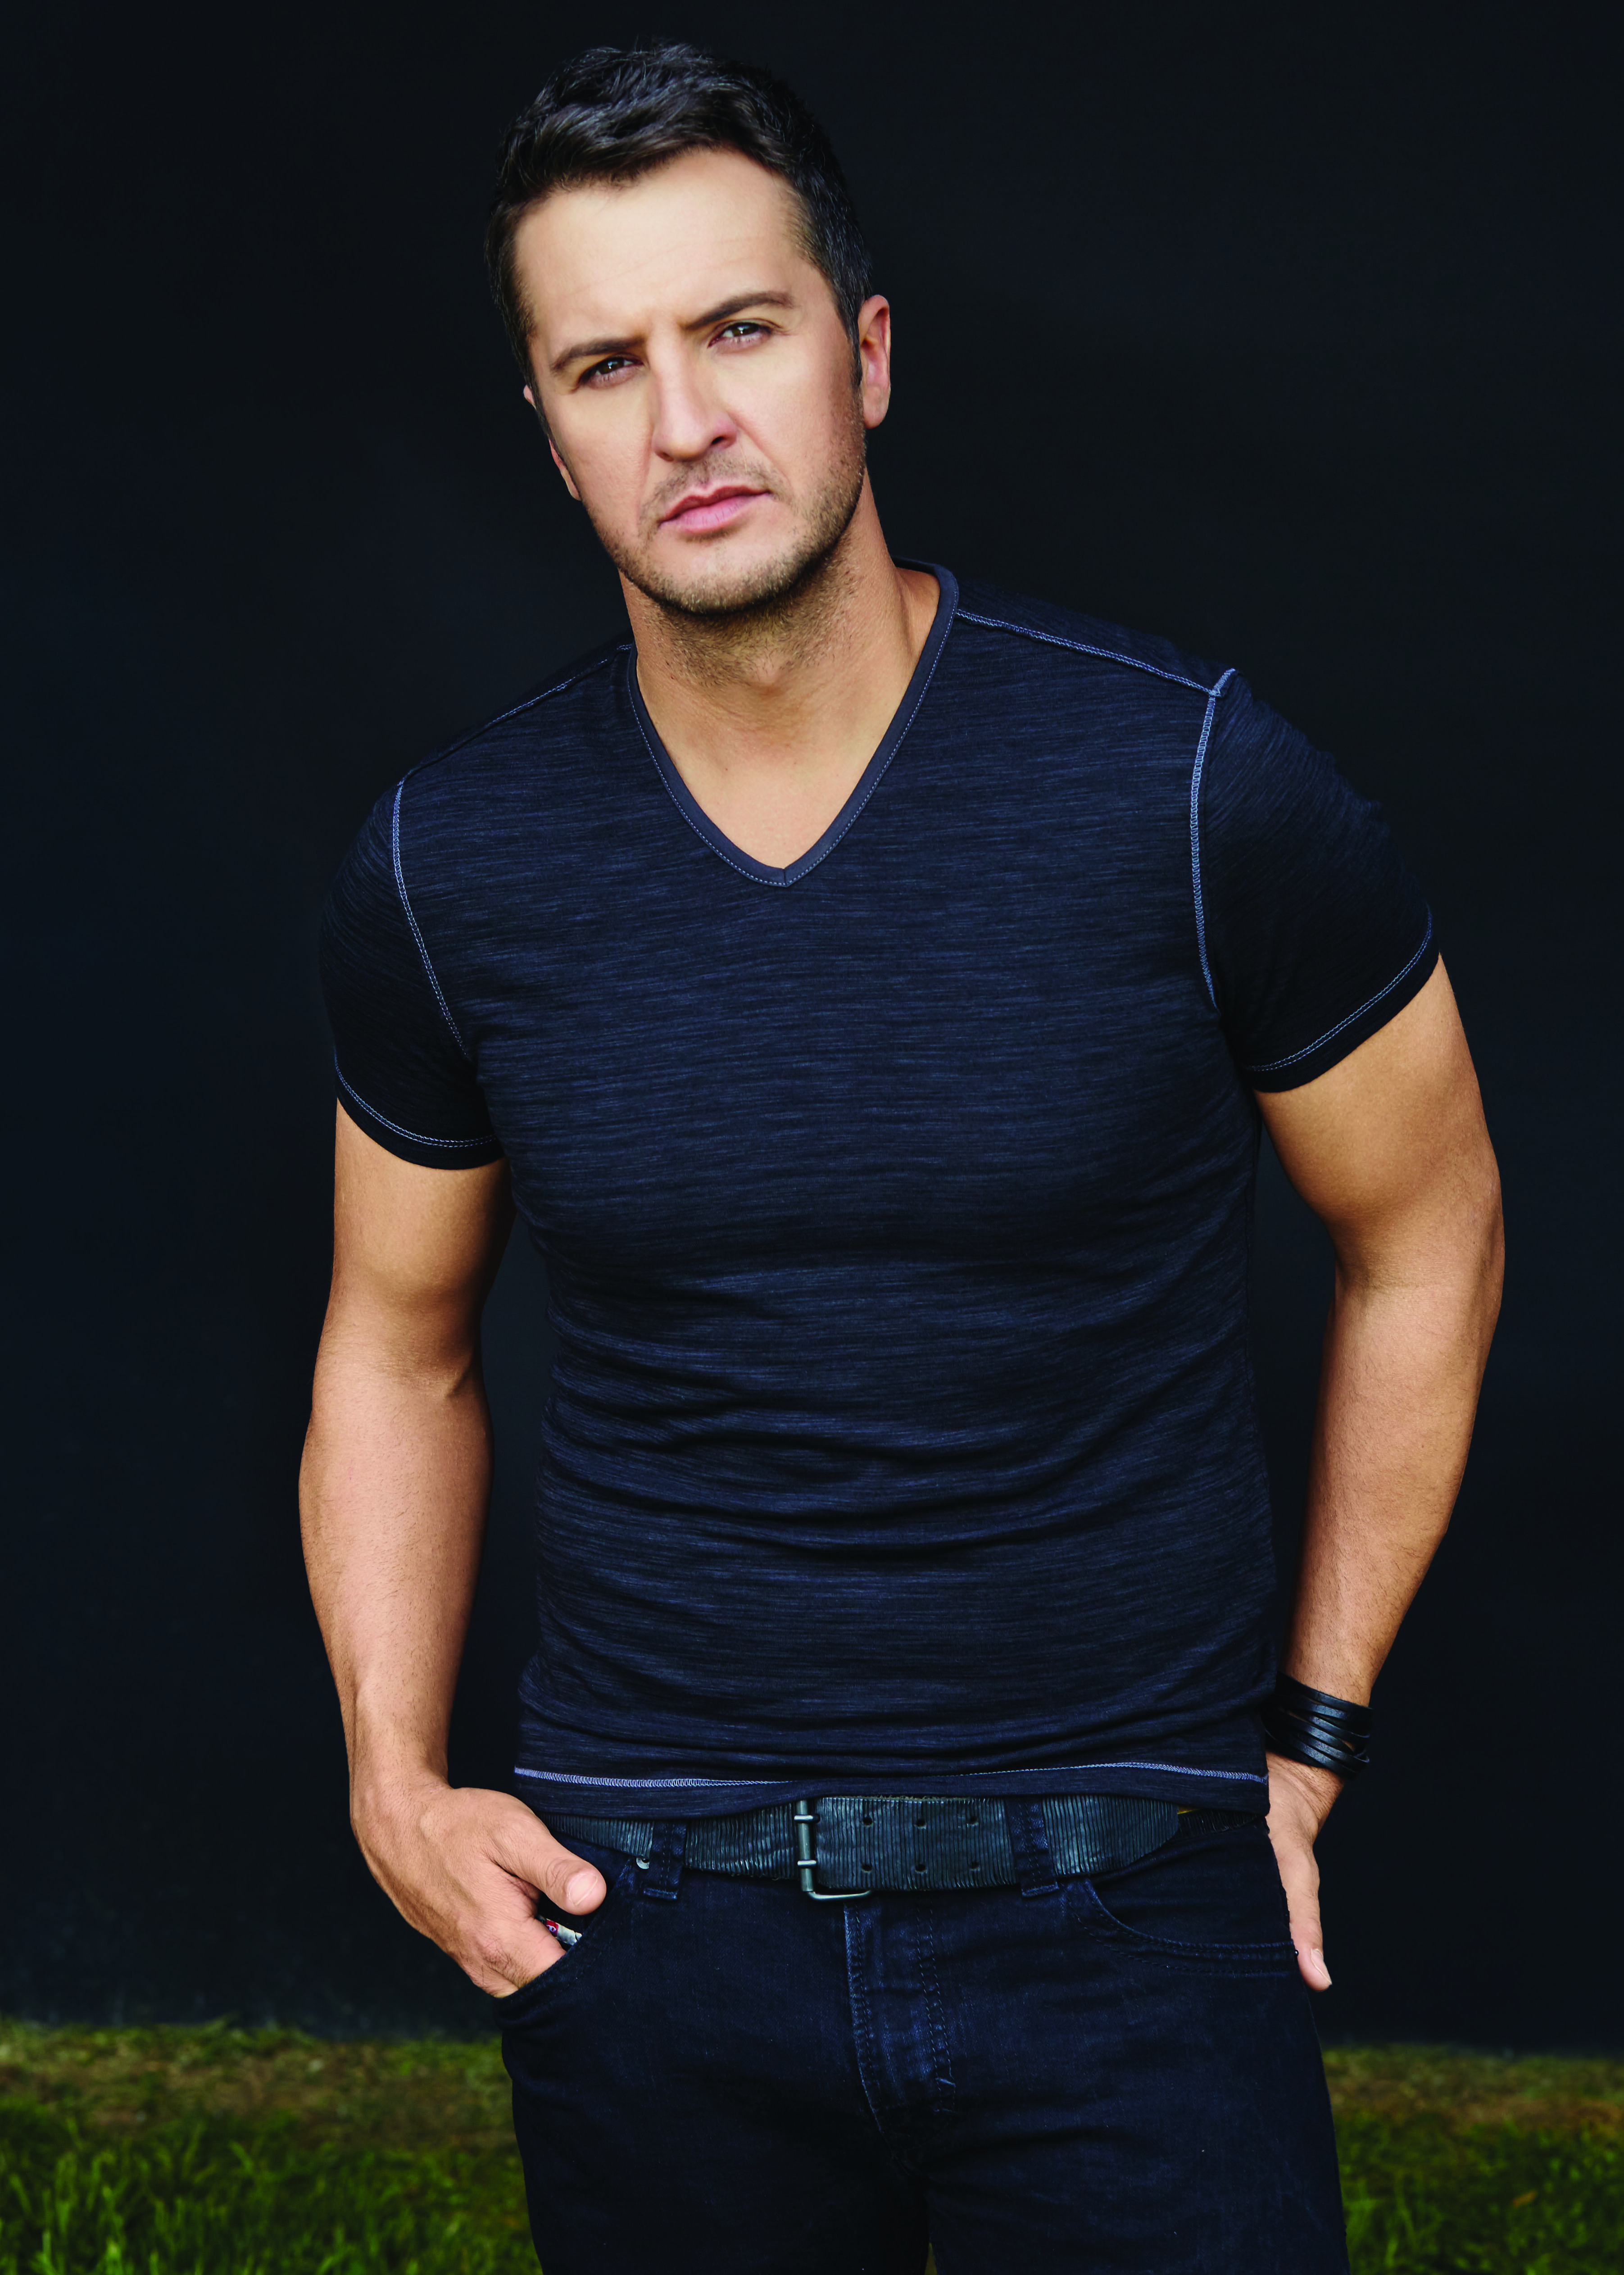 Luke Bryan: The Rolling Stone Country Interview